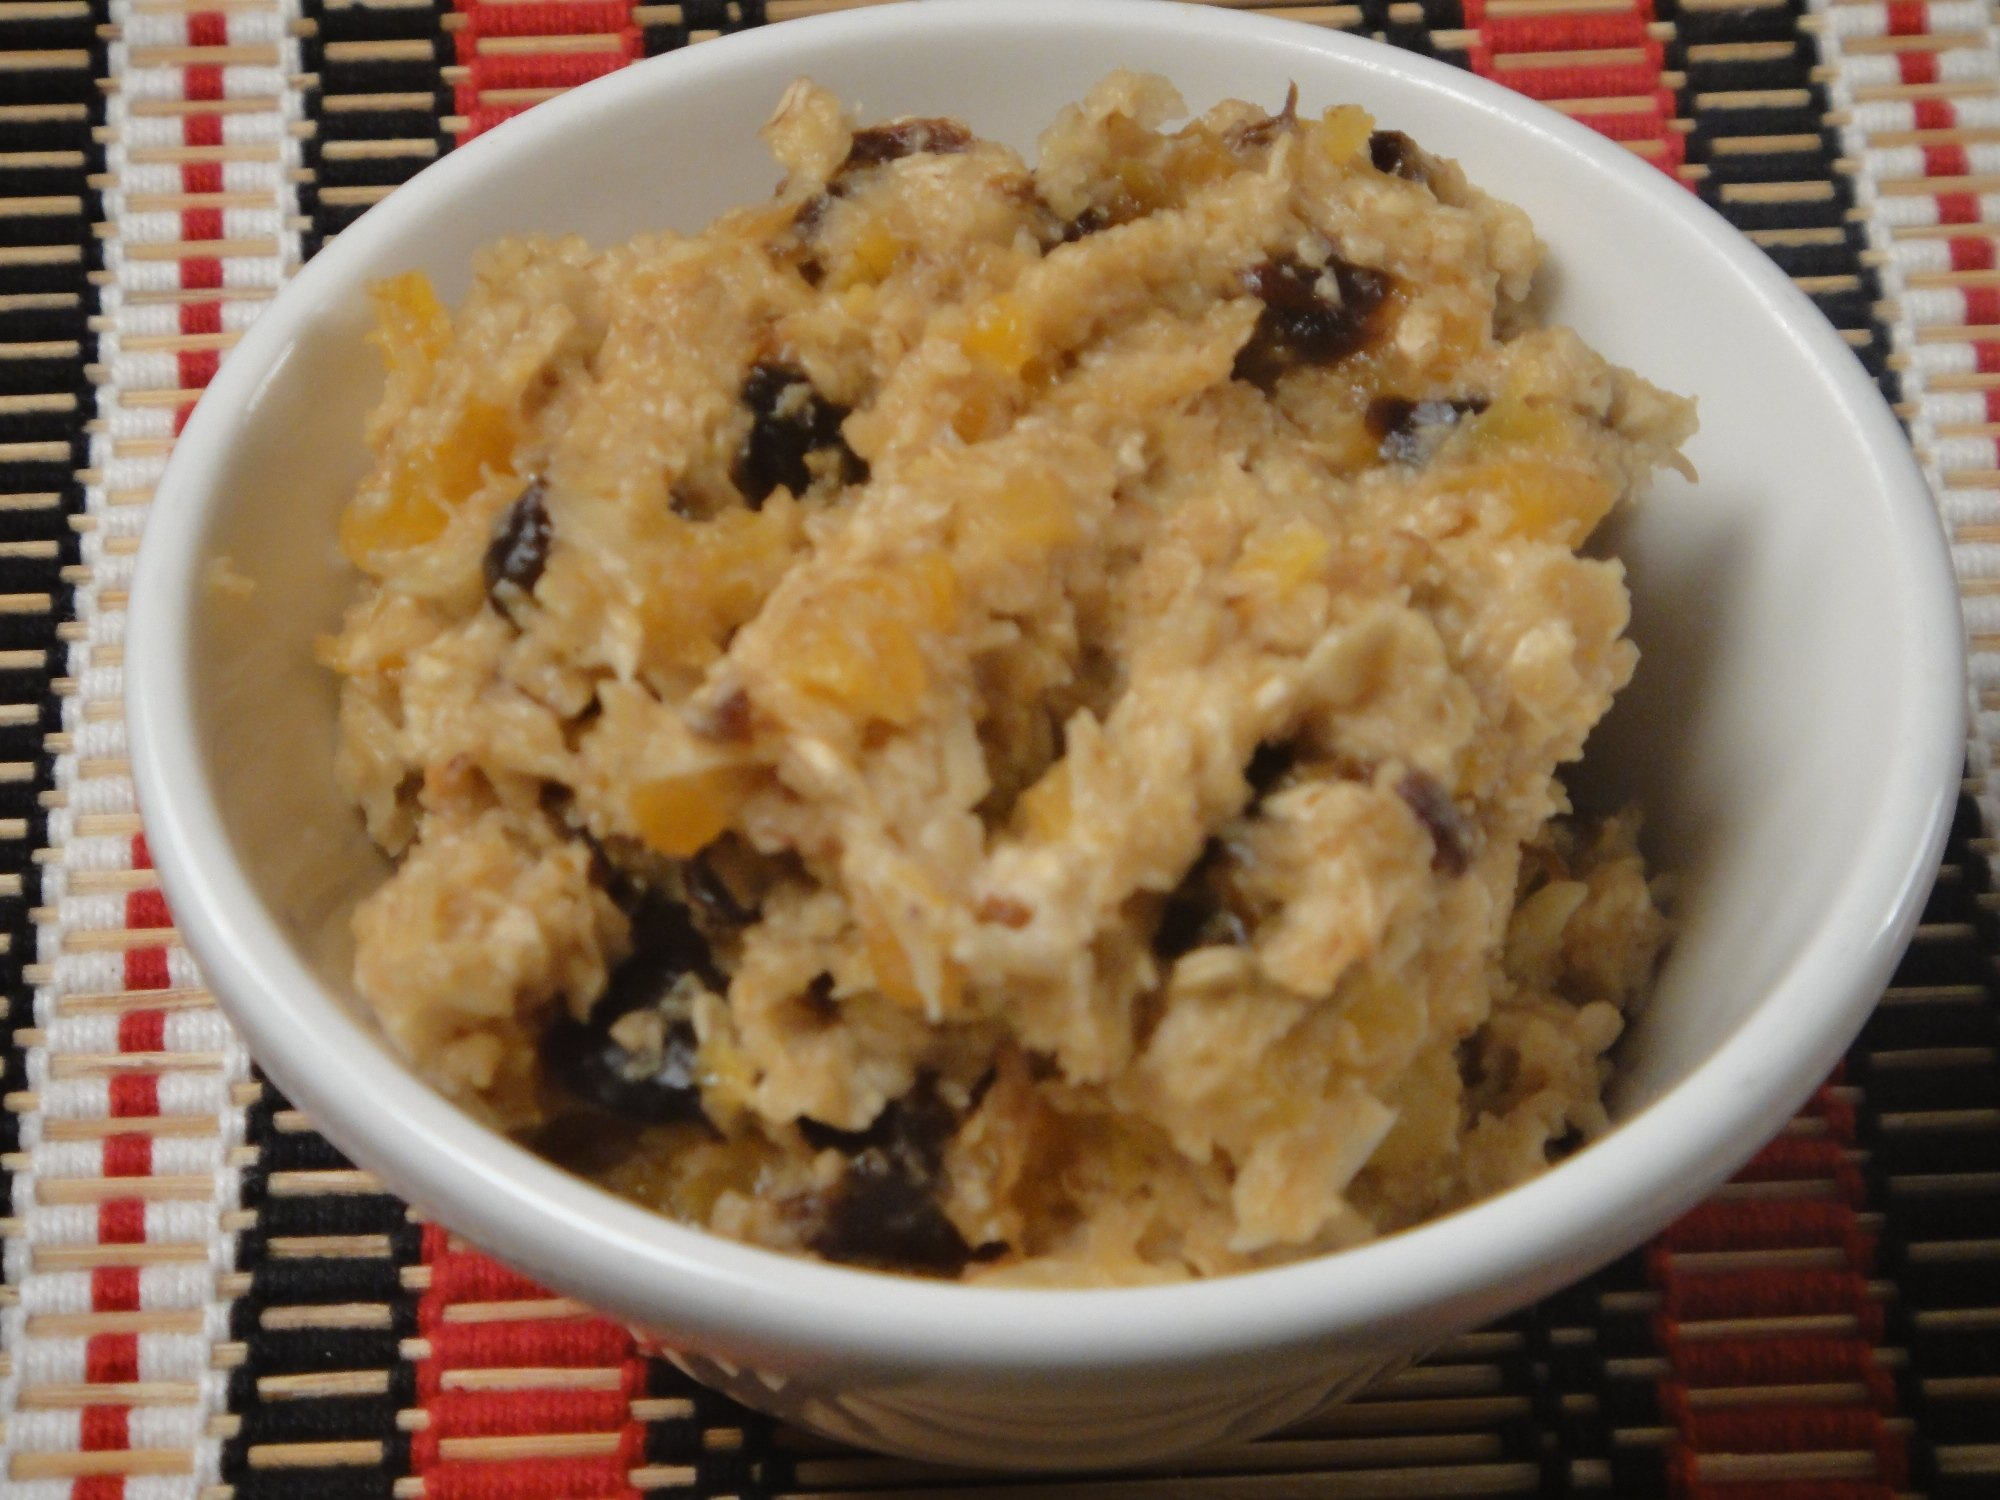 Oats with dried fruits